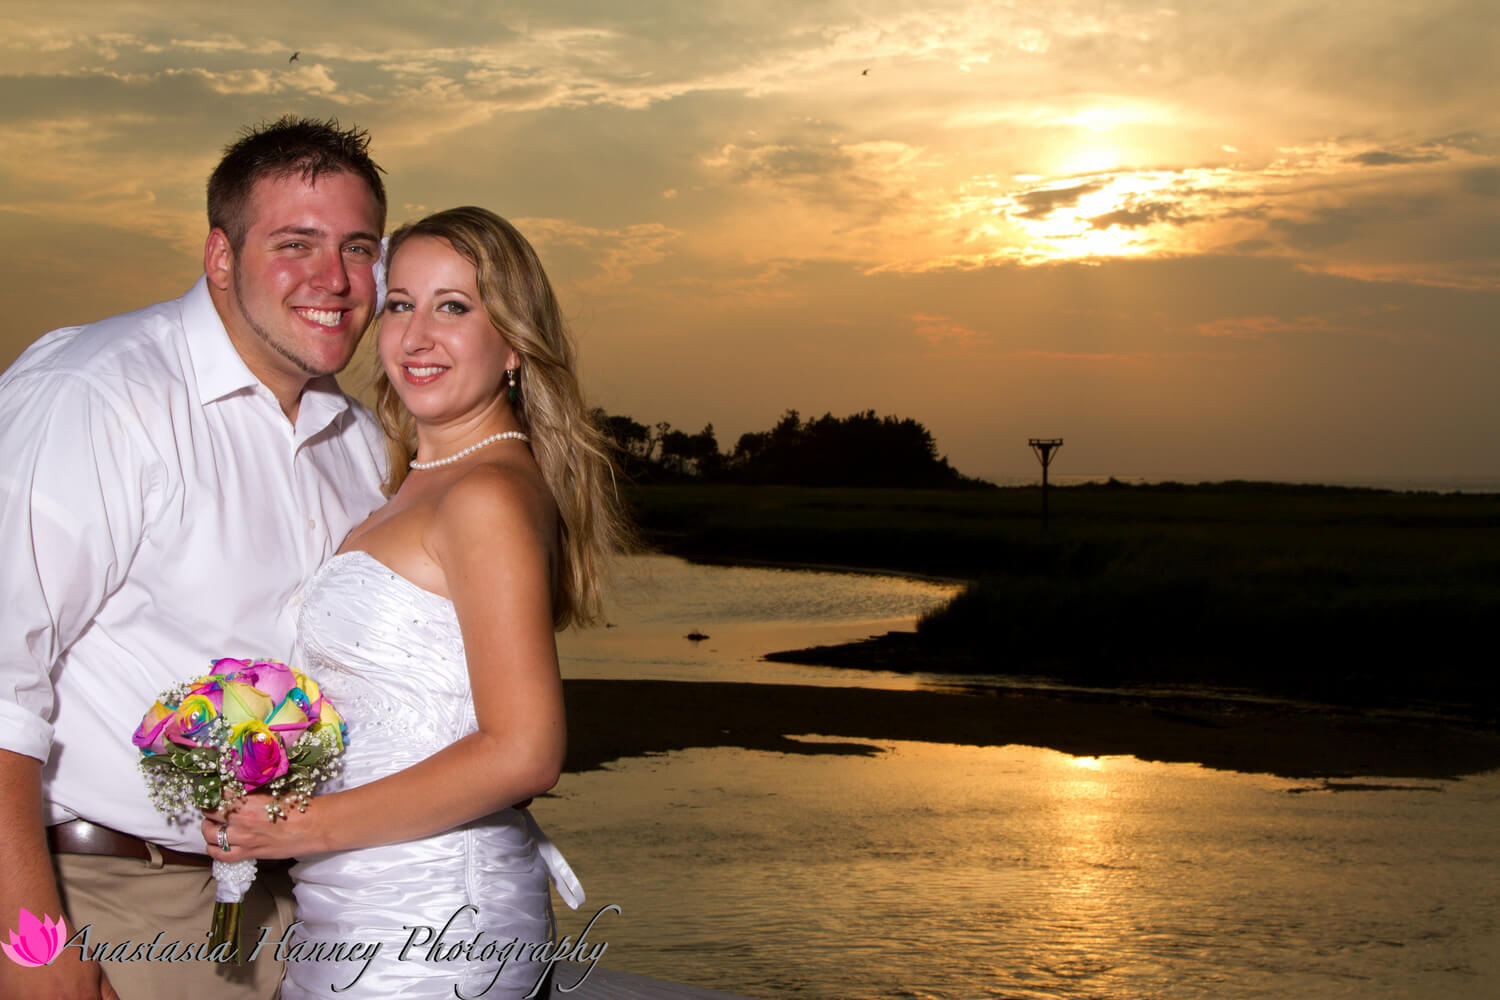 Wedding Photography of Bride and Groom at Sunset on Jersey Shore Beach